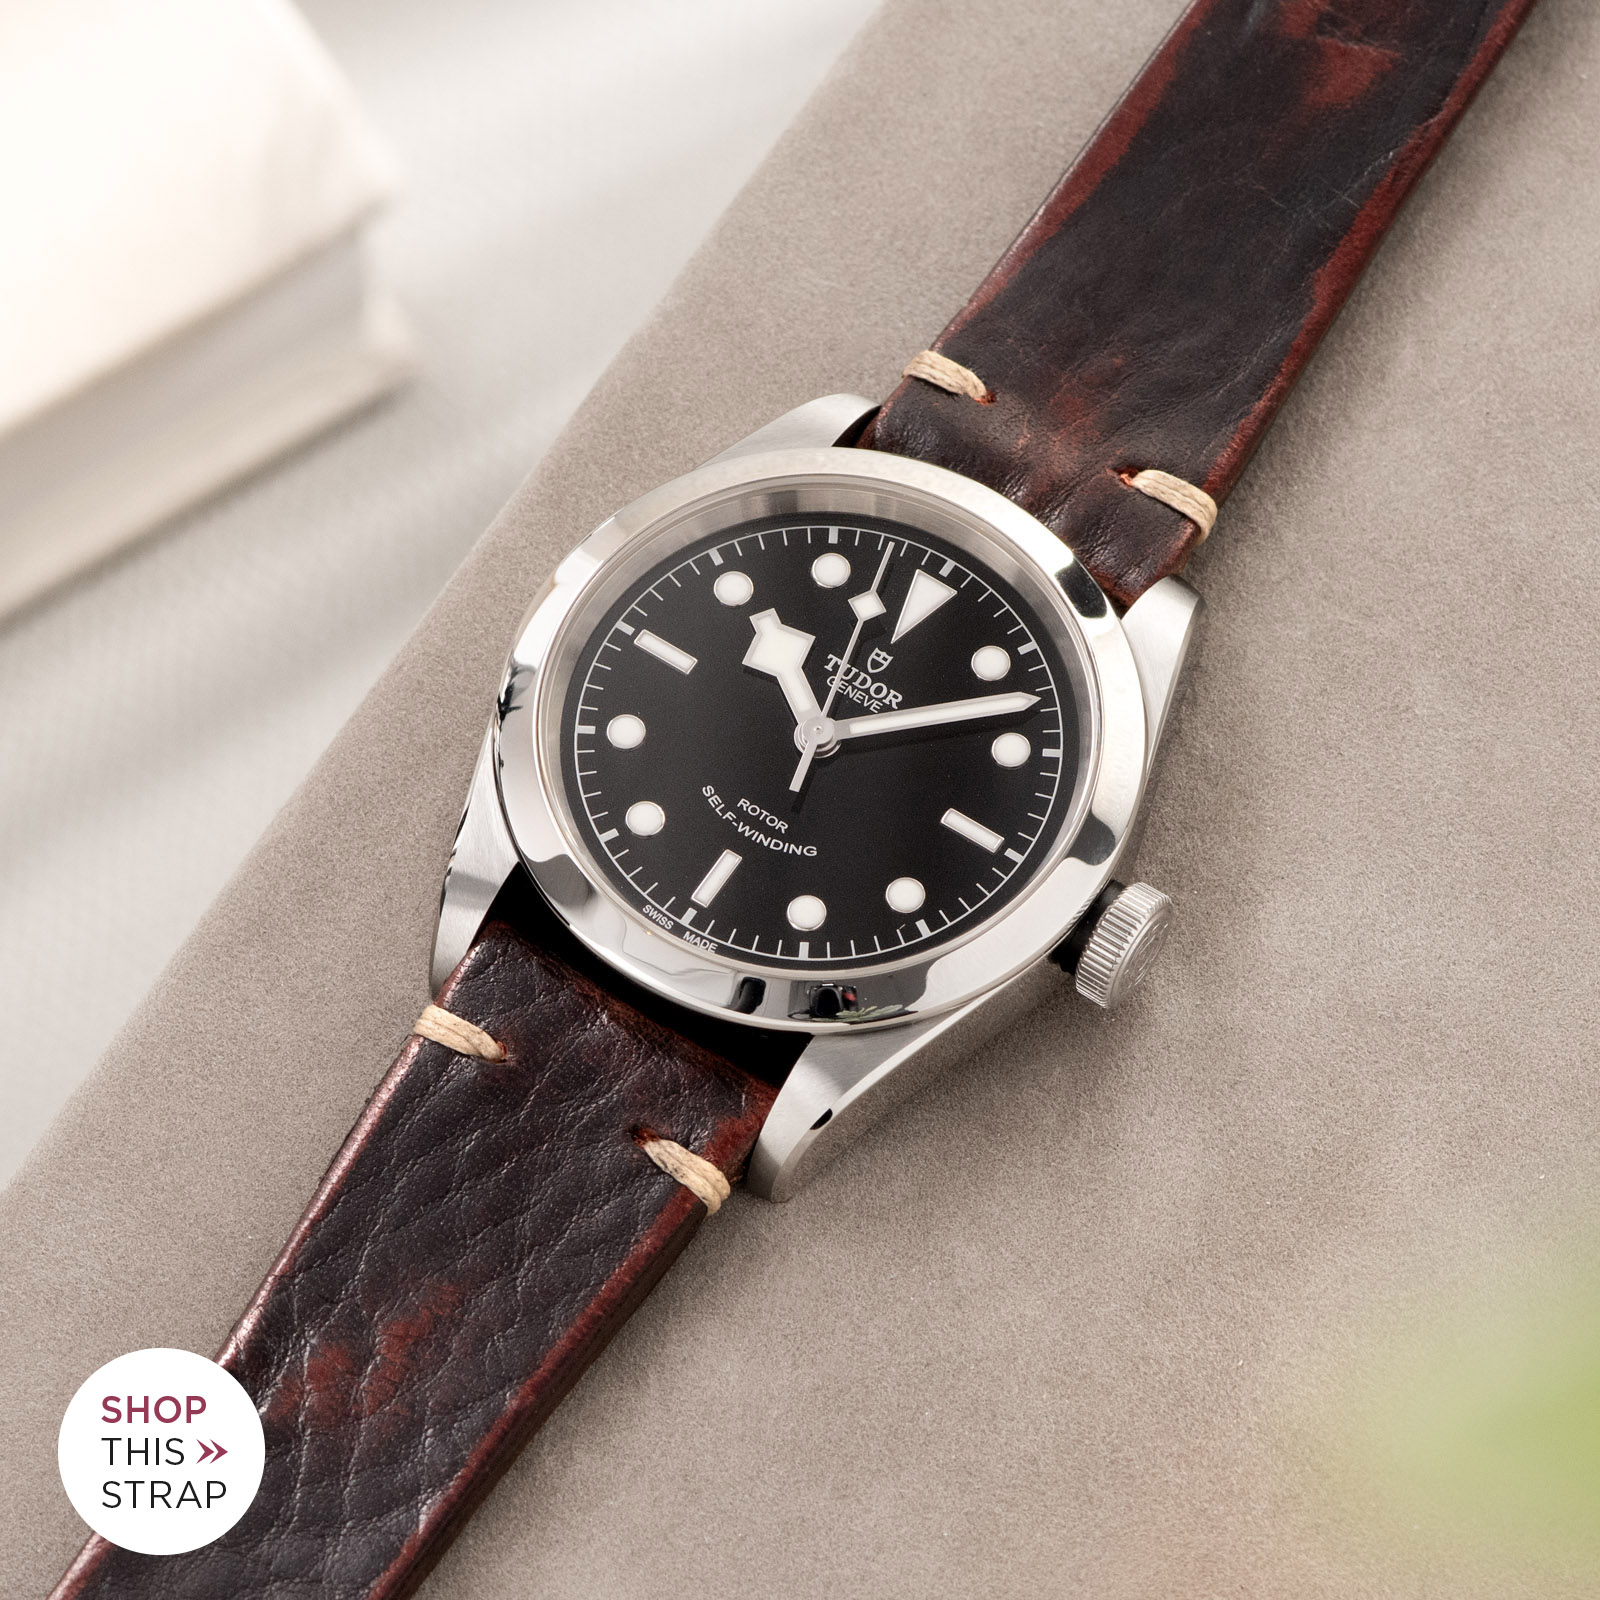 Bulang and Sons_Strap Guide_Tudor Heritage BlackBay 411_Diablo Black Leather Watch Strap